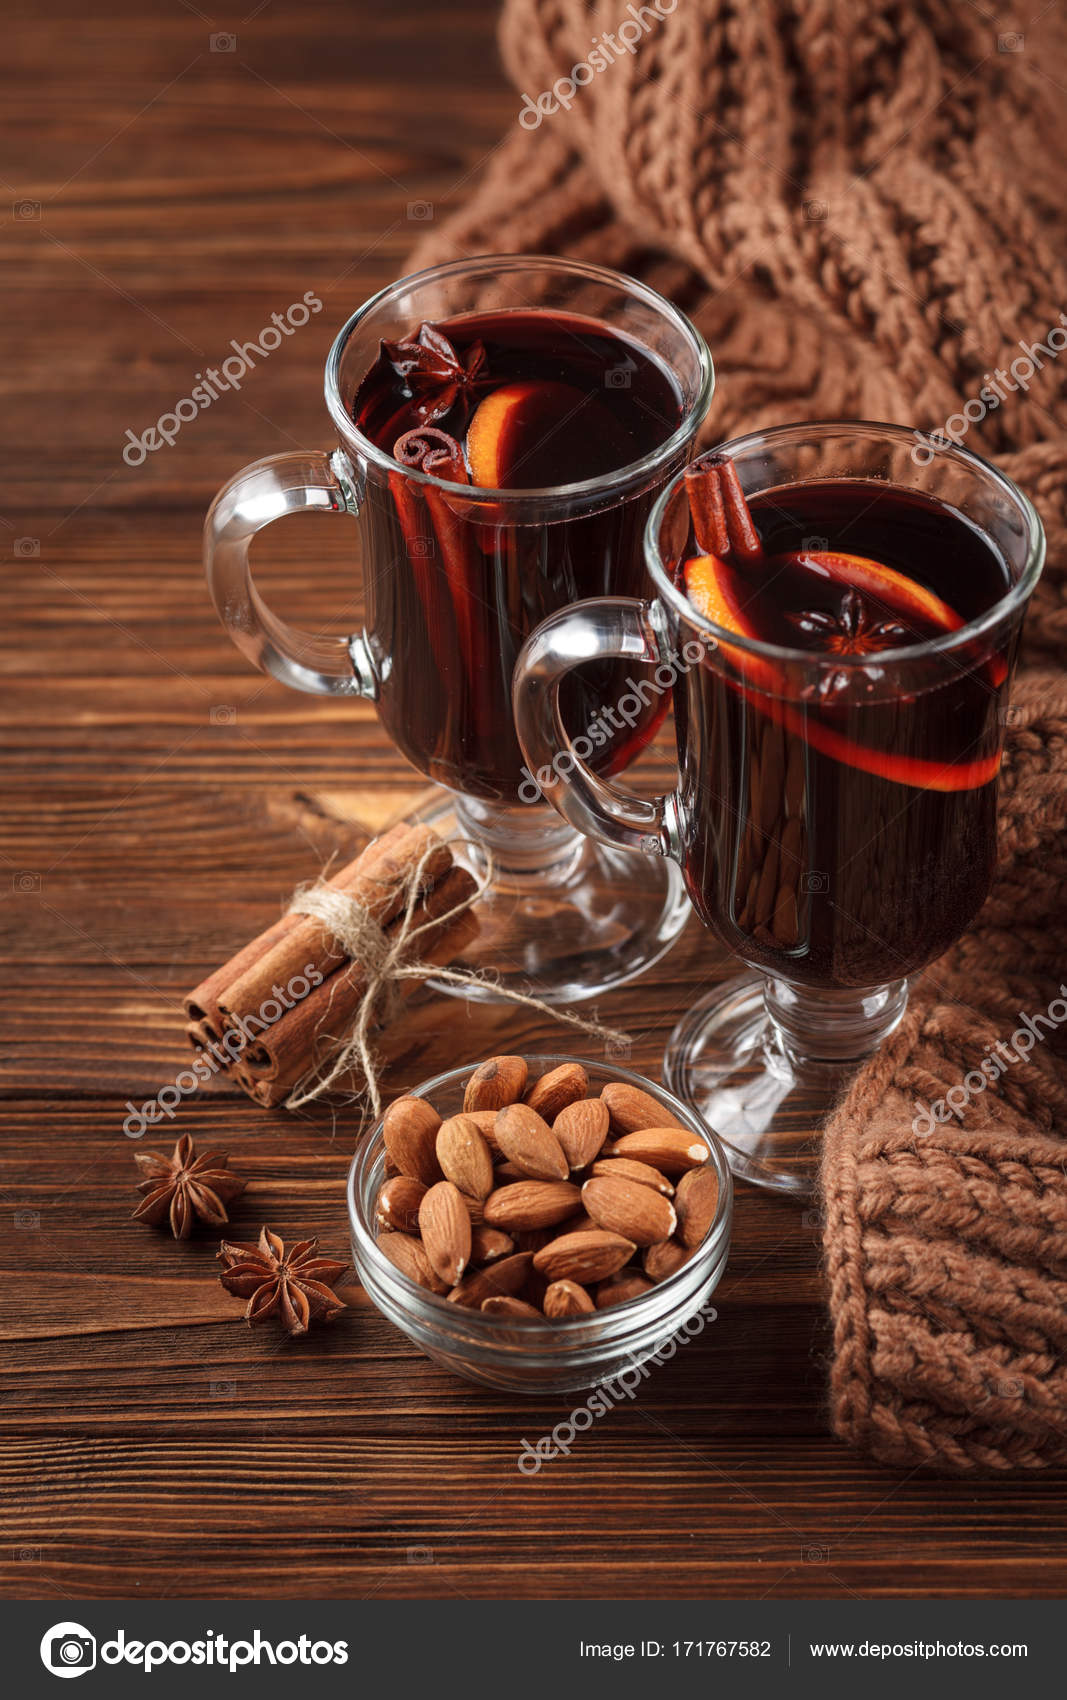 Winter Horizontal Mulled Wine Banner Glasses With Hot Red Wine And Spices On Wooden Background Stock Photo C Rojdesign 171767582